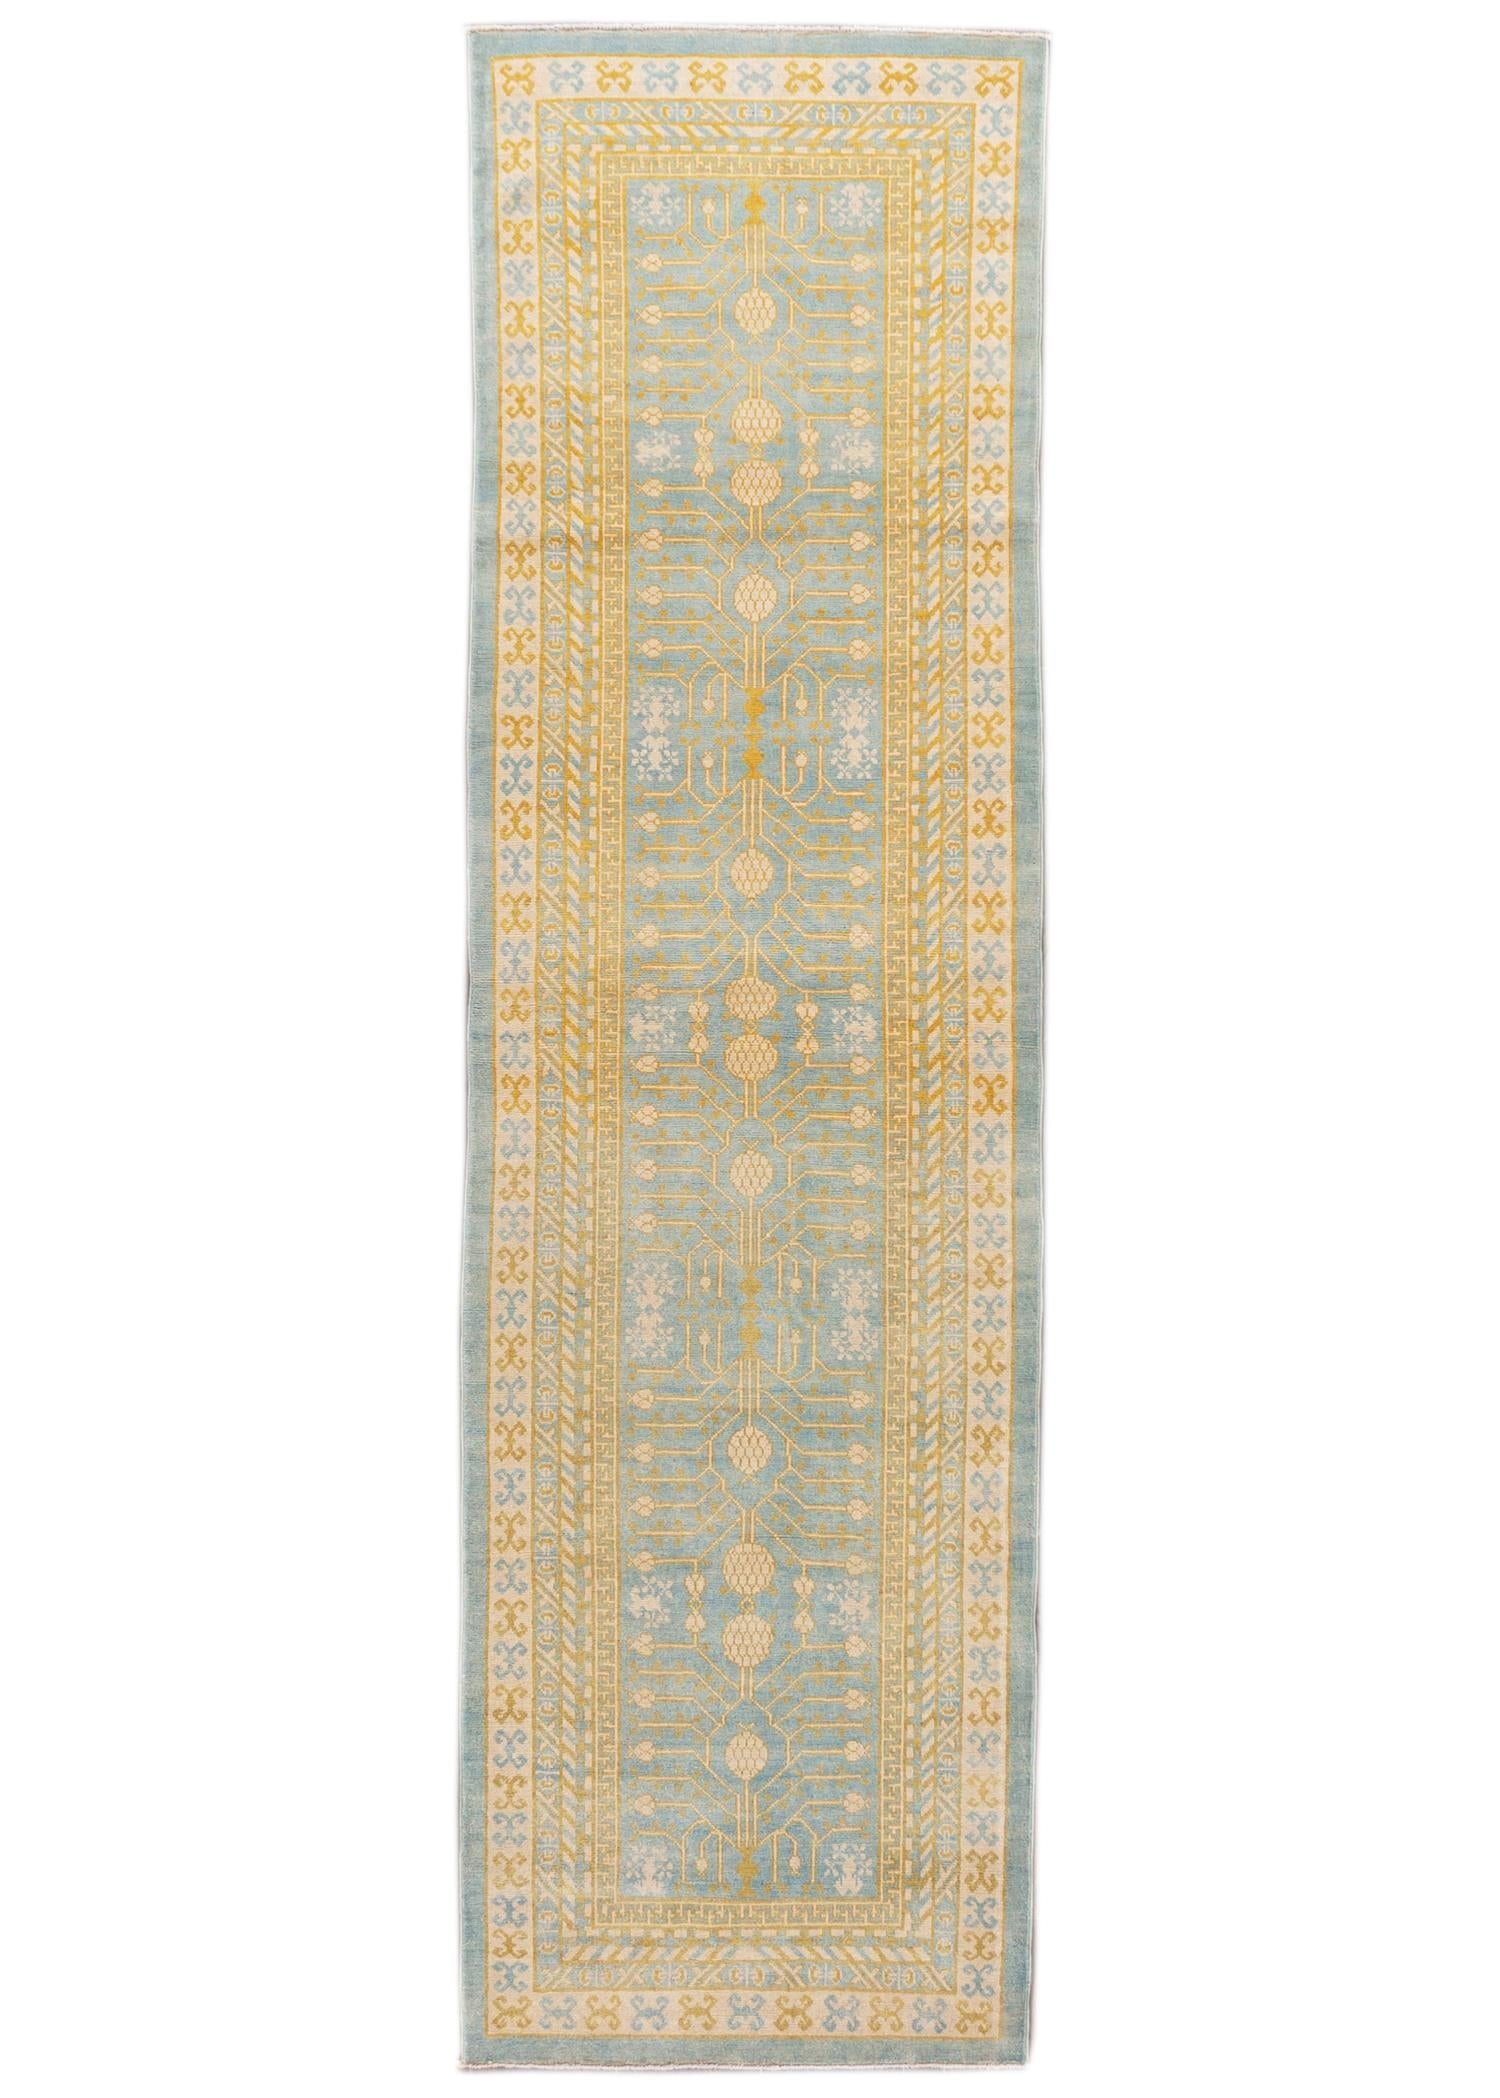 Contemporary Blue and Yellow Khotan-Style Wool Runner Rug 3' x 12'